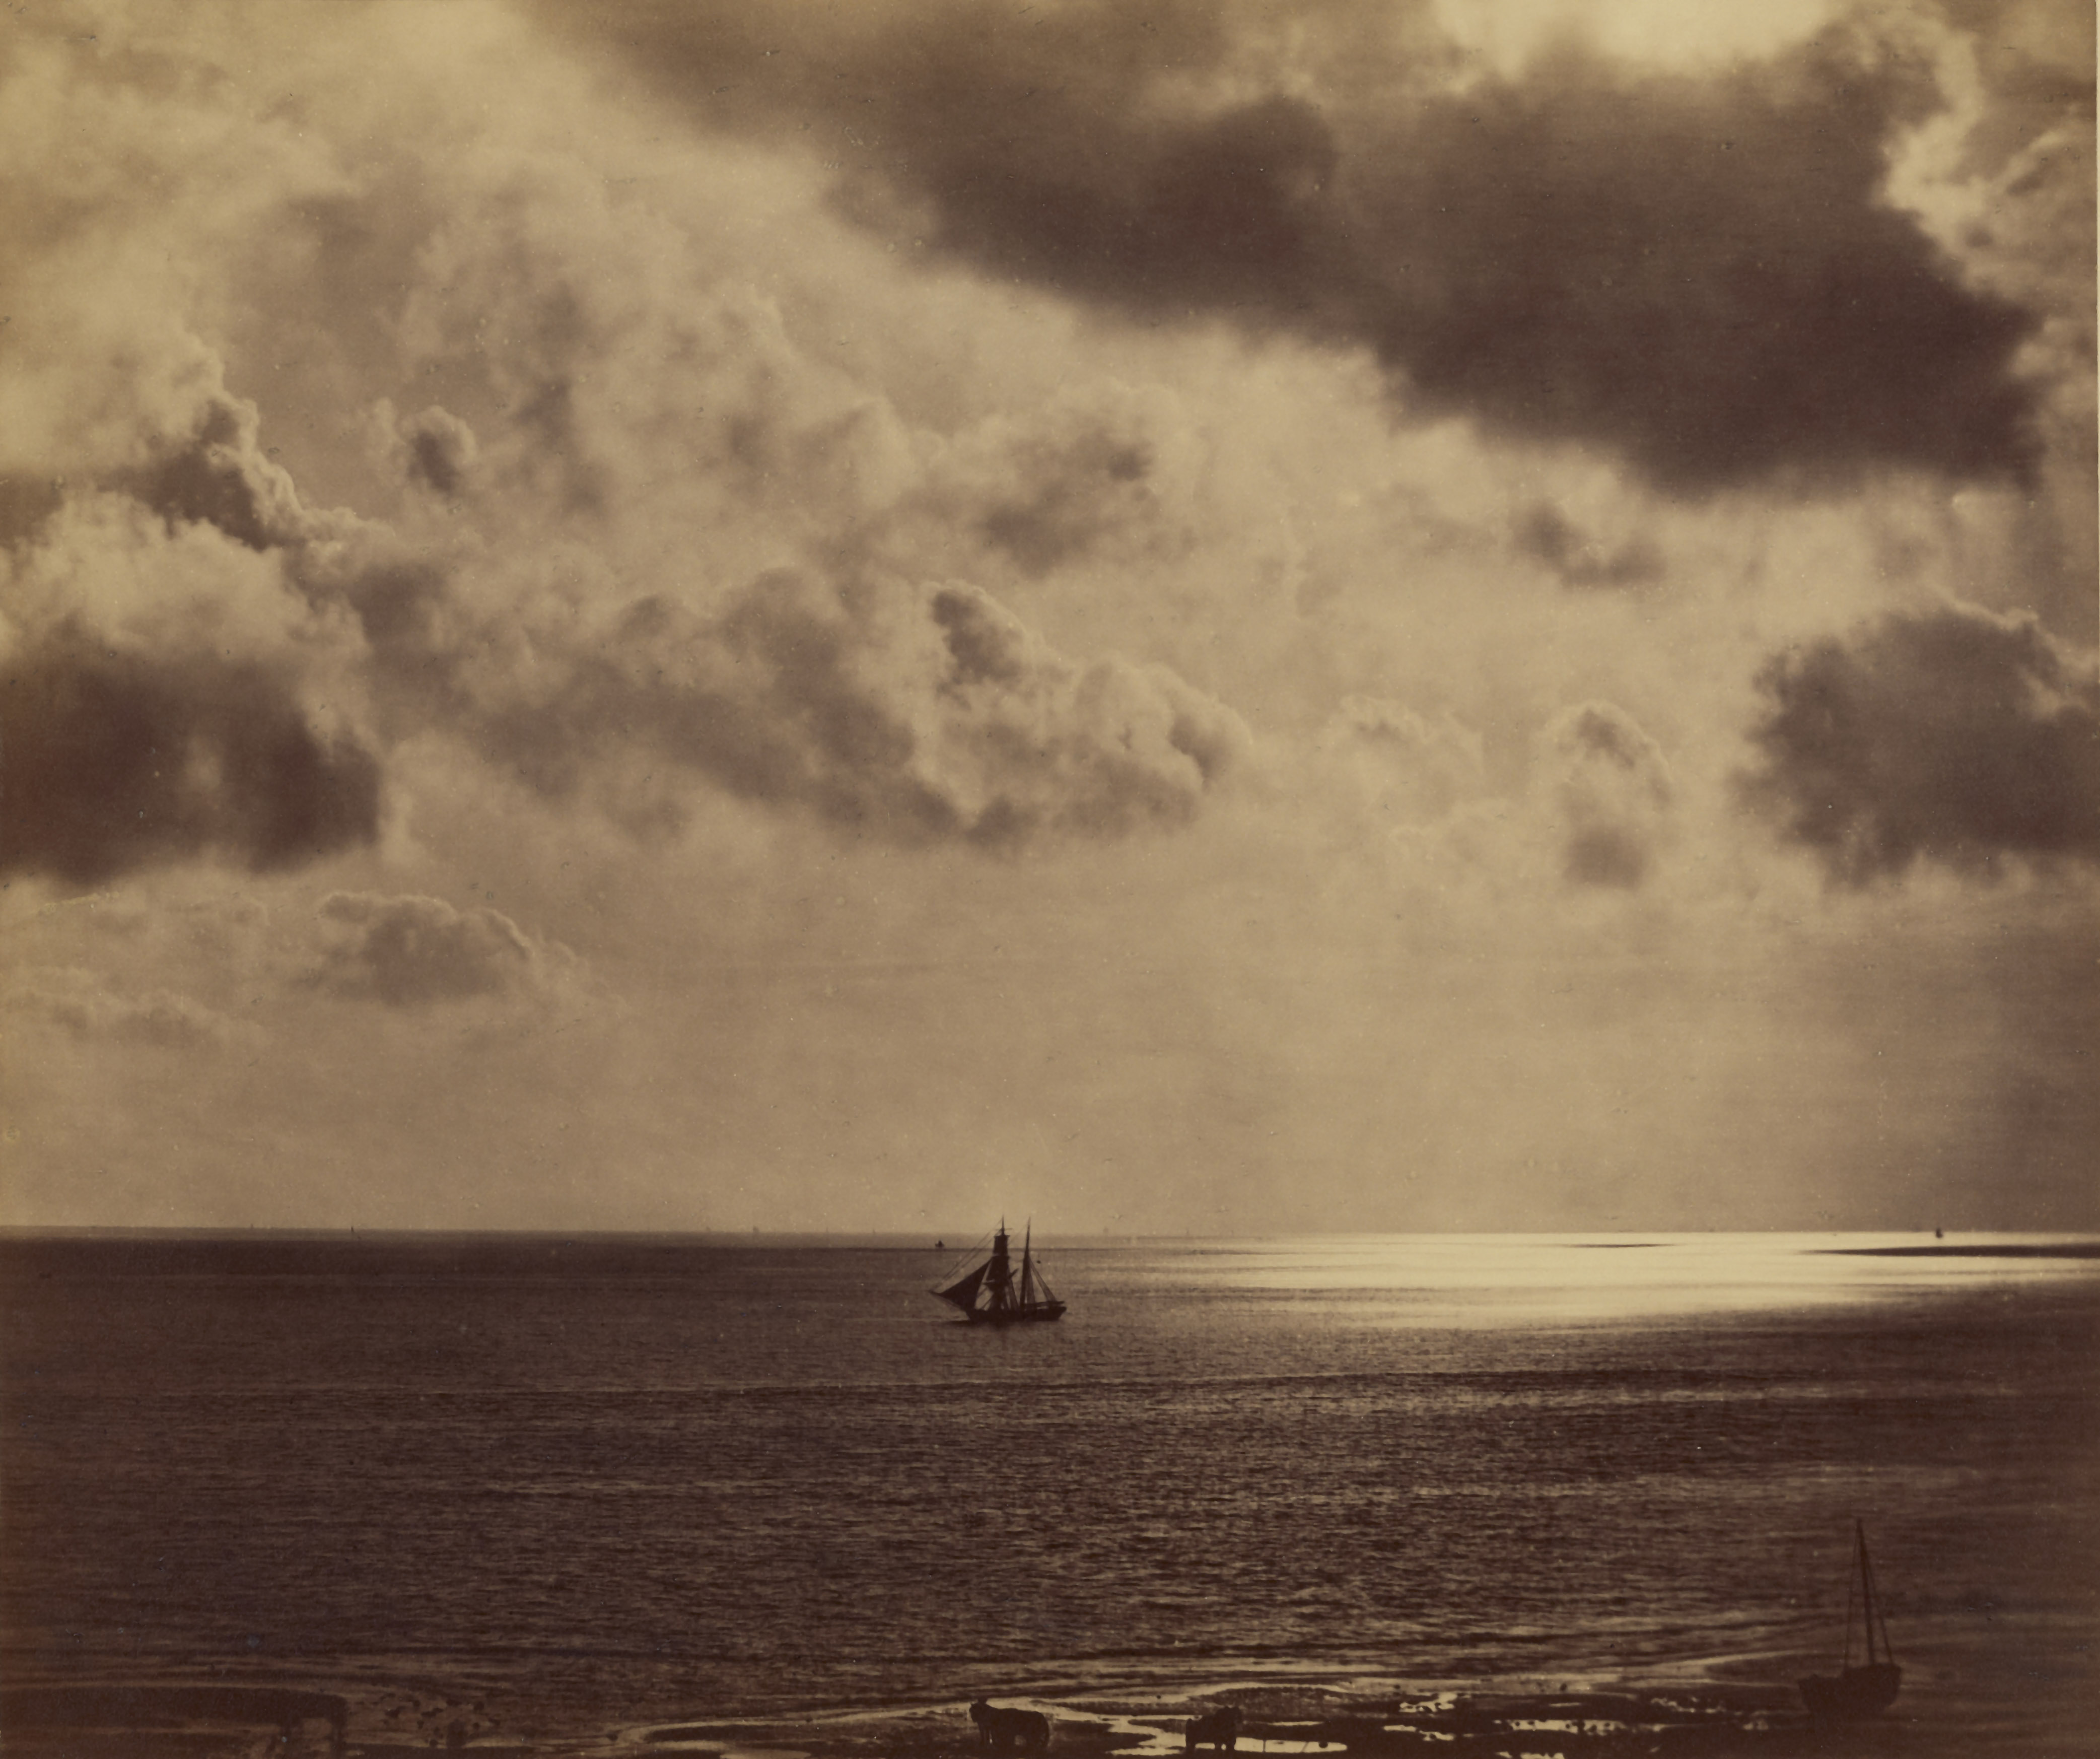 A picture of a small sail boat on the mediteranian sea. The detail in the shore and sea can be clearly made out, dispite the sky being much brighter. In the right side of the image, the sun glares on the warm water, a bright sunny patch over exposing the camera.